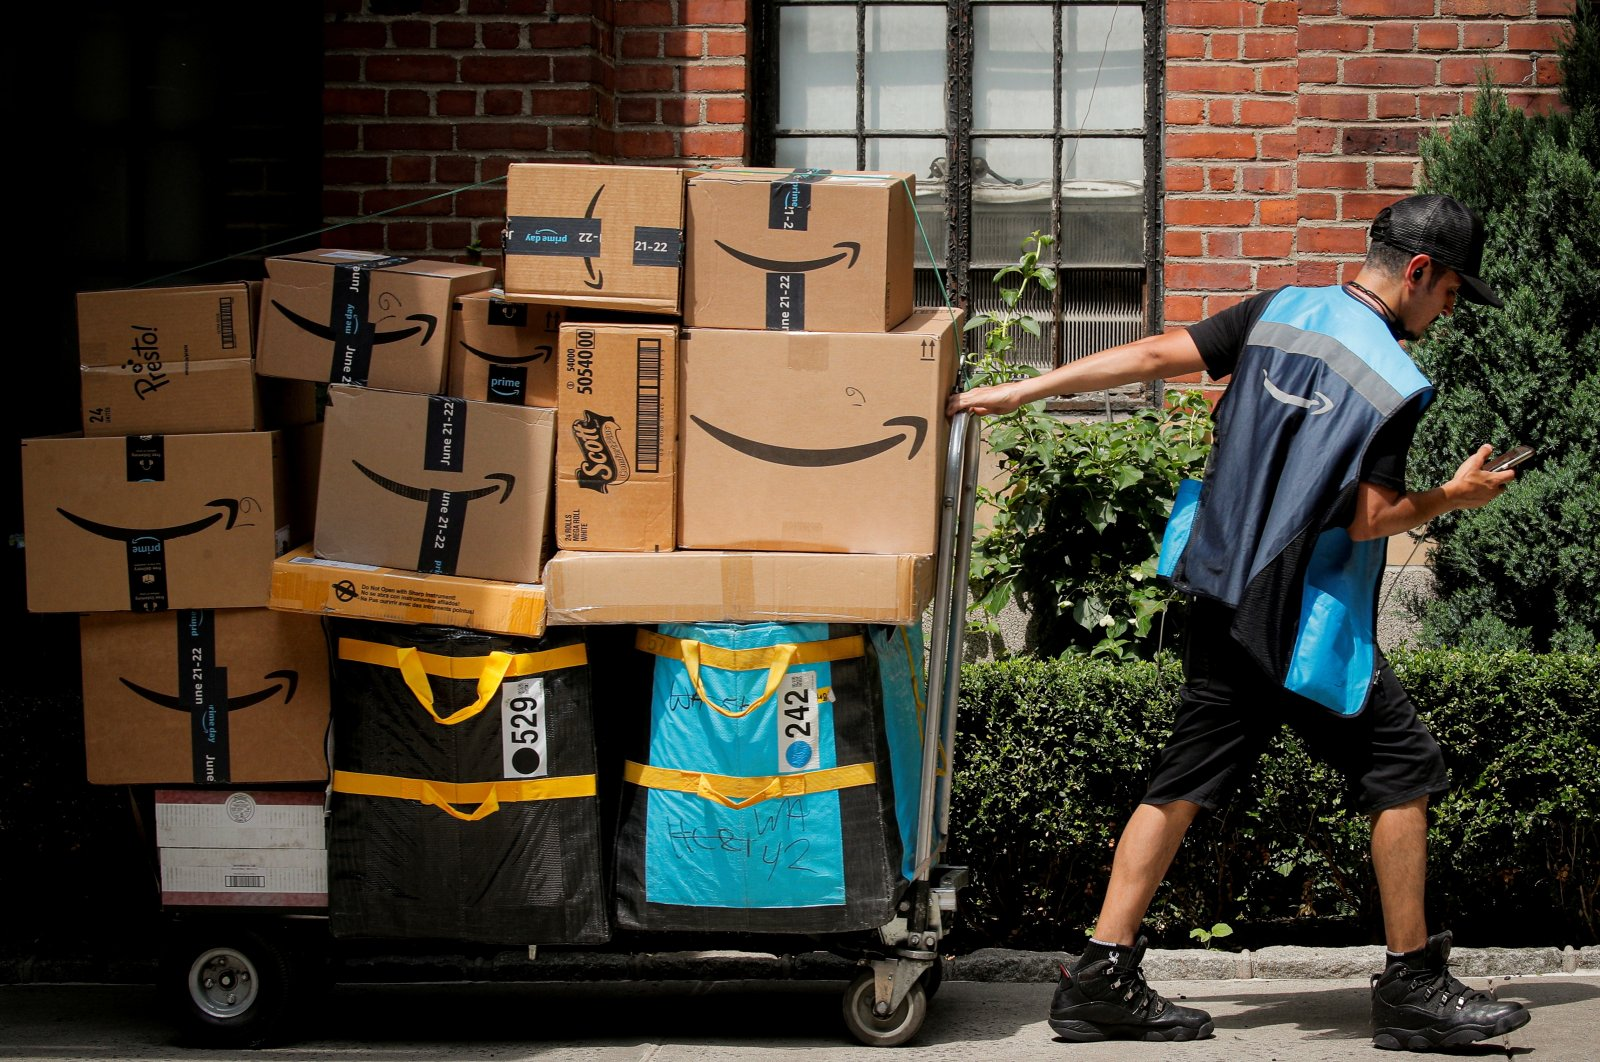 An Amazon delivery worker pulls a delivery cart full of packages during its annual Prime Day promotion in New York City, U.S., June 21, 2021. (Reuters Photo)